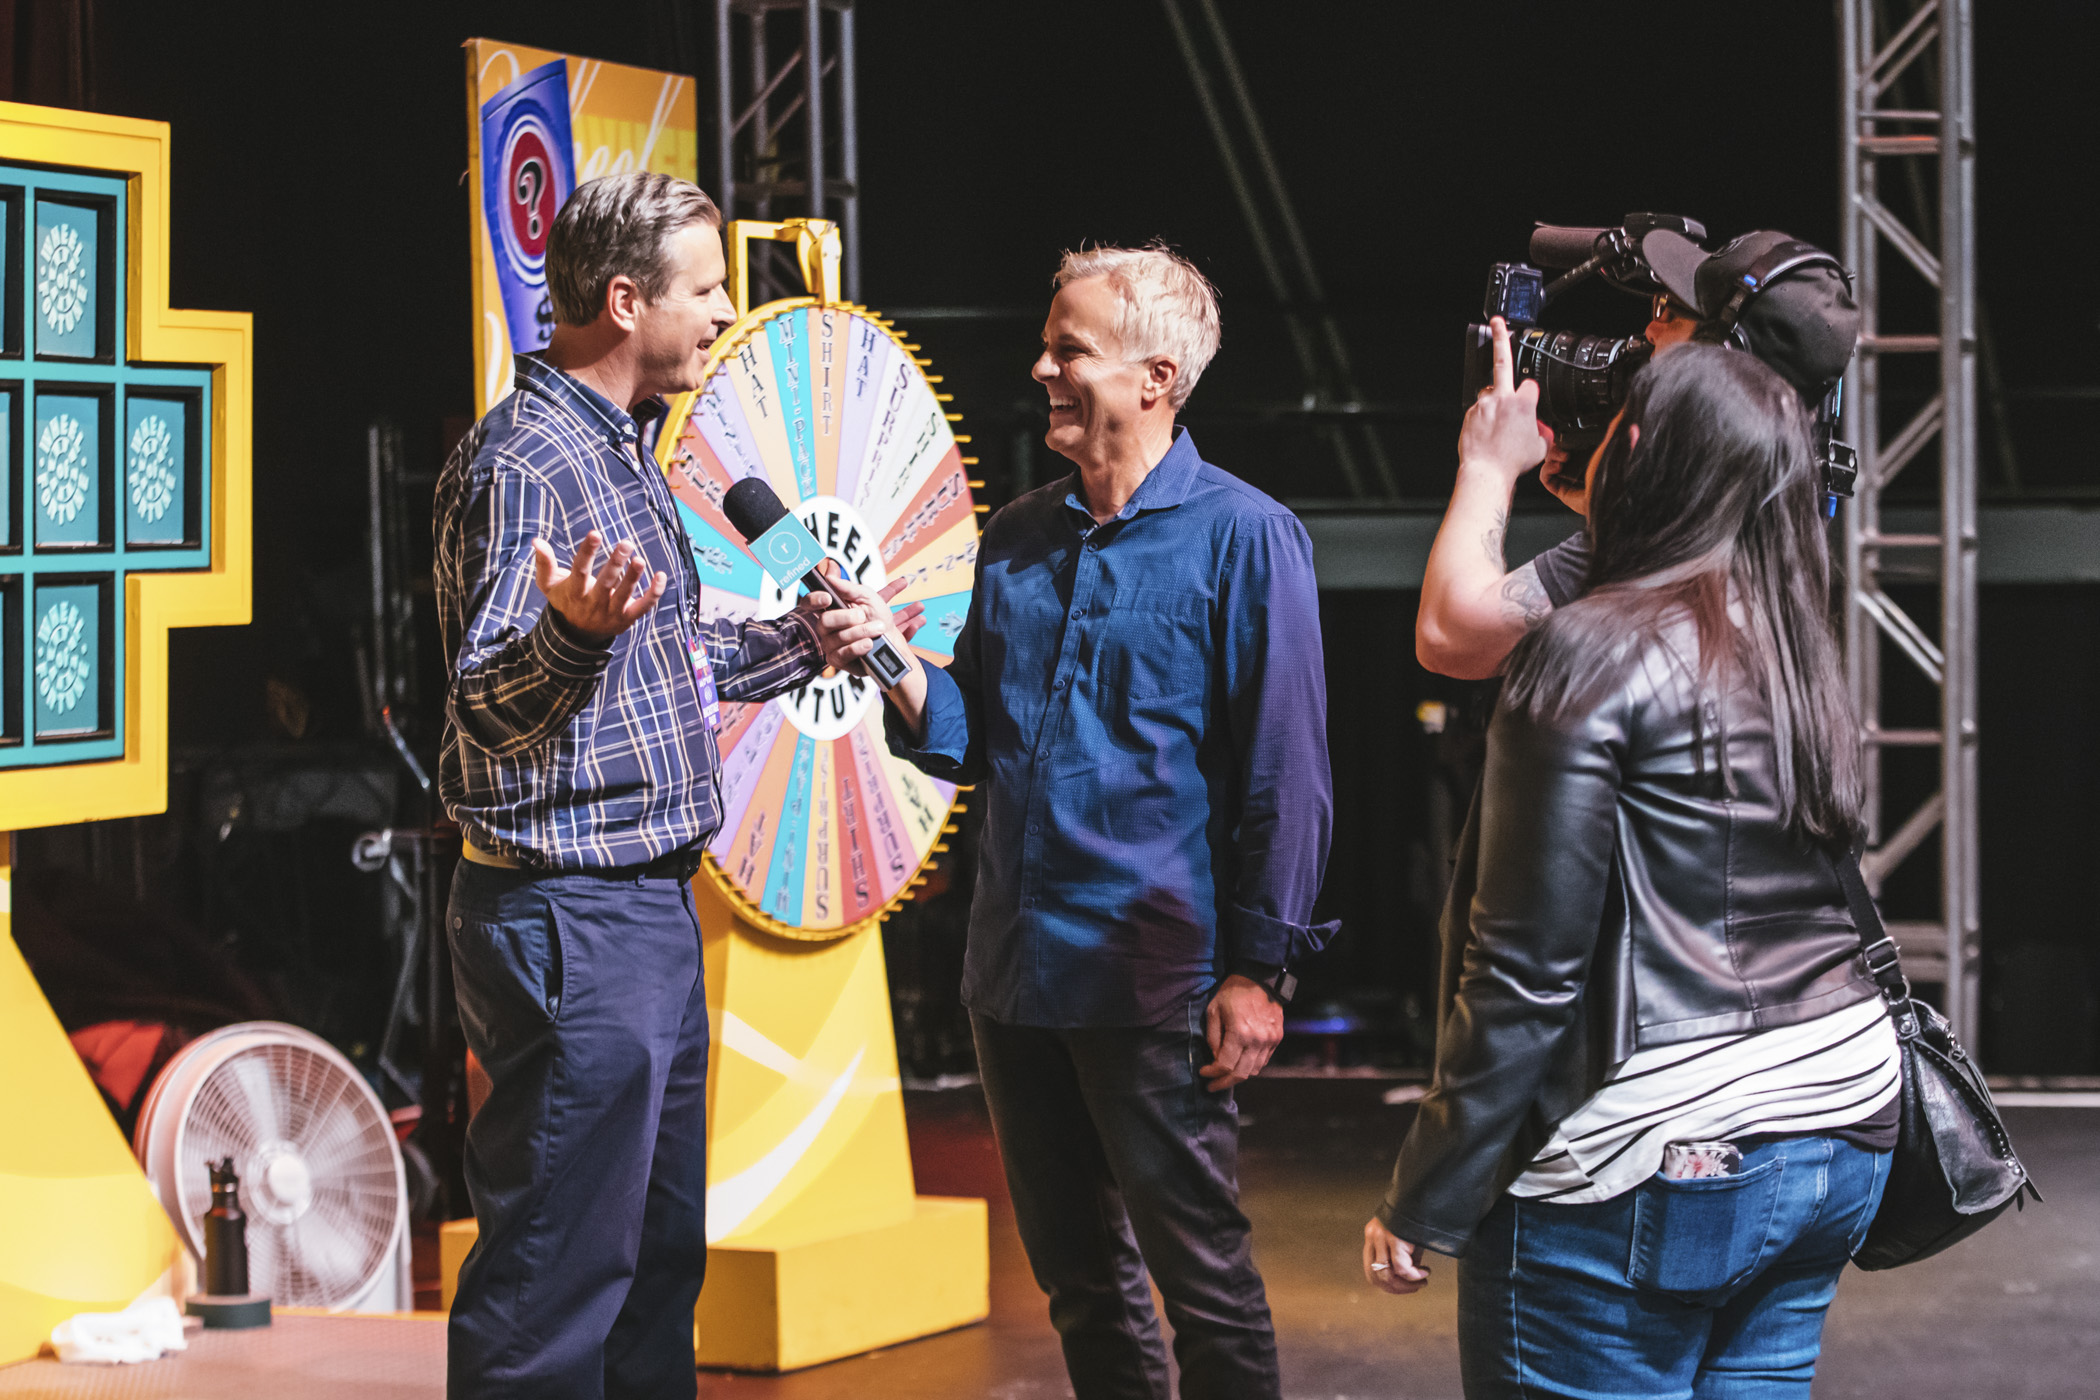 "The Wheel of Fortune Wheelmobile made its way through the Emerald Queen Casino on Wednesday night July 17 for open auditions to the public for an opportunity to be a part of America's favorite game show.{&nbsp;}<a  href=""http://seattlerefined.com/lifestyle/wheel-of-fortune-contestant-search-05-08-2019"" target=""_blank"" title=""http://seattlerefined.com/lifestyle/wheel-of-fortune-contestant-search-05-08-2019"">The casting will continue Thursday night, July 17</a>. (Sunita Martini / Seattle Refined)"